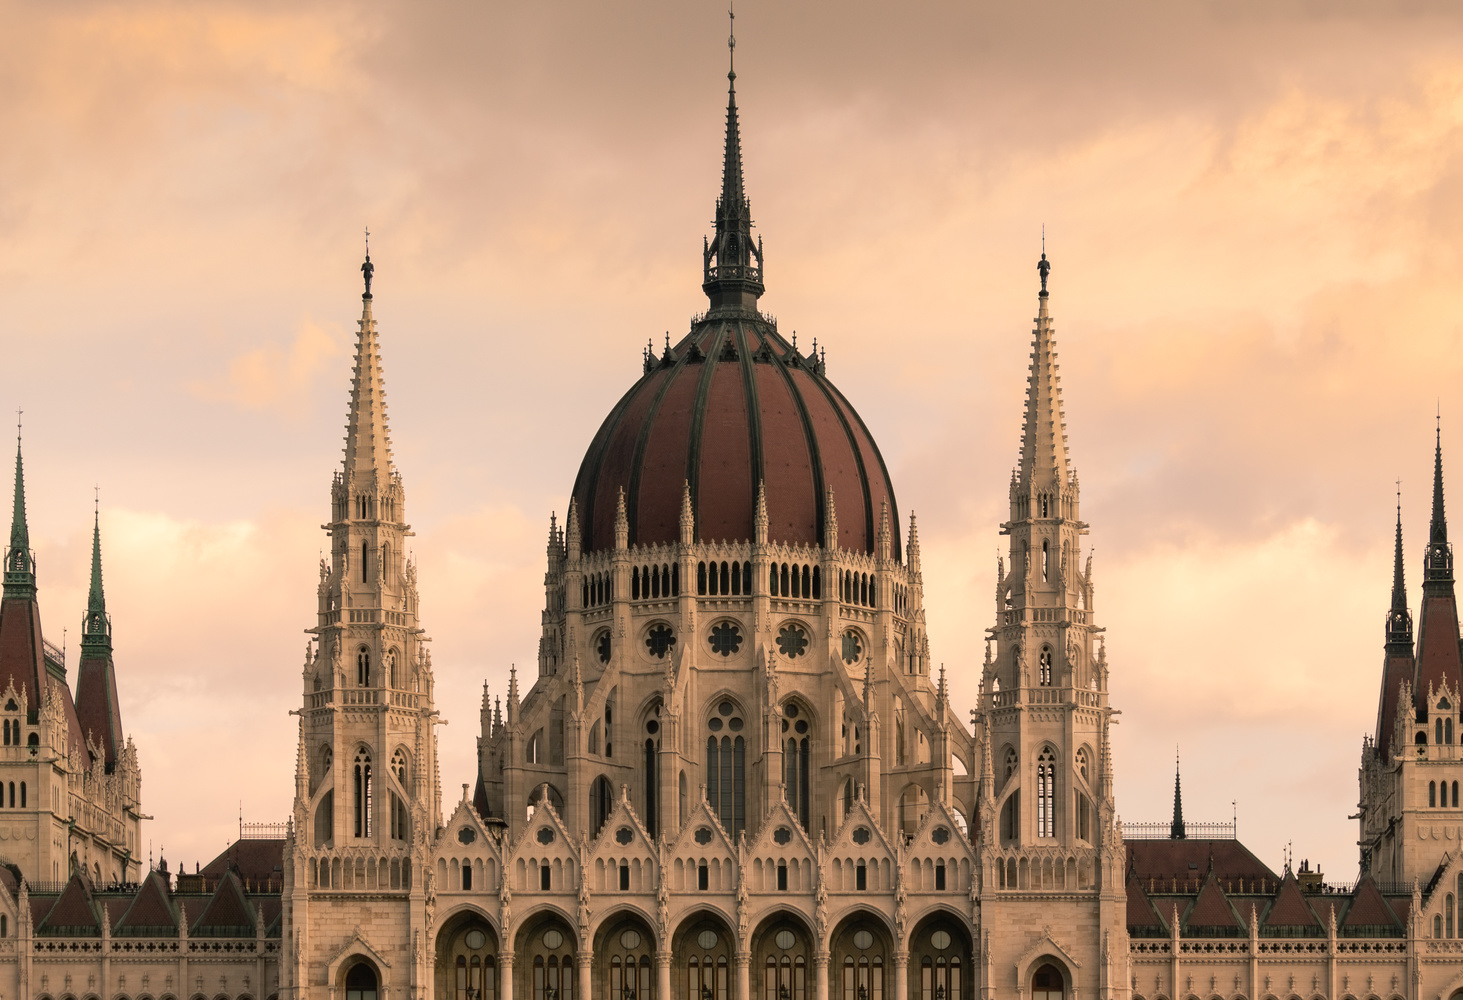 Budapest Parliament at dawn by Luca Campioni